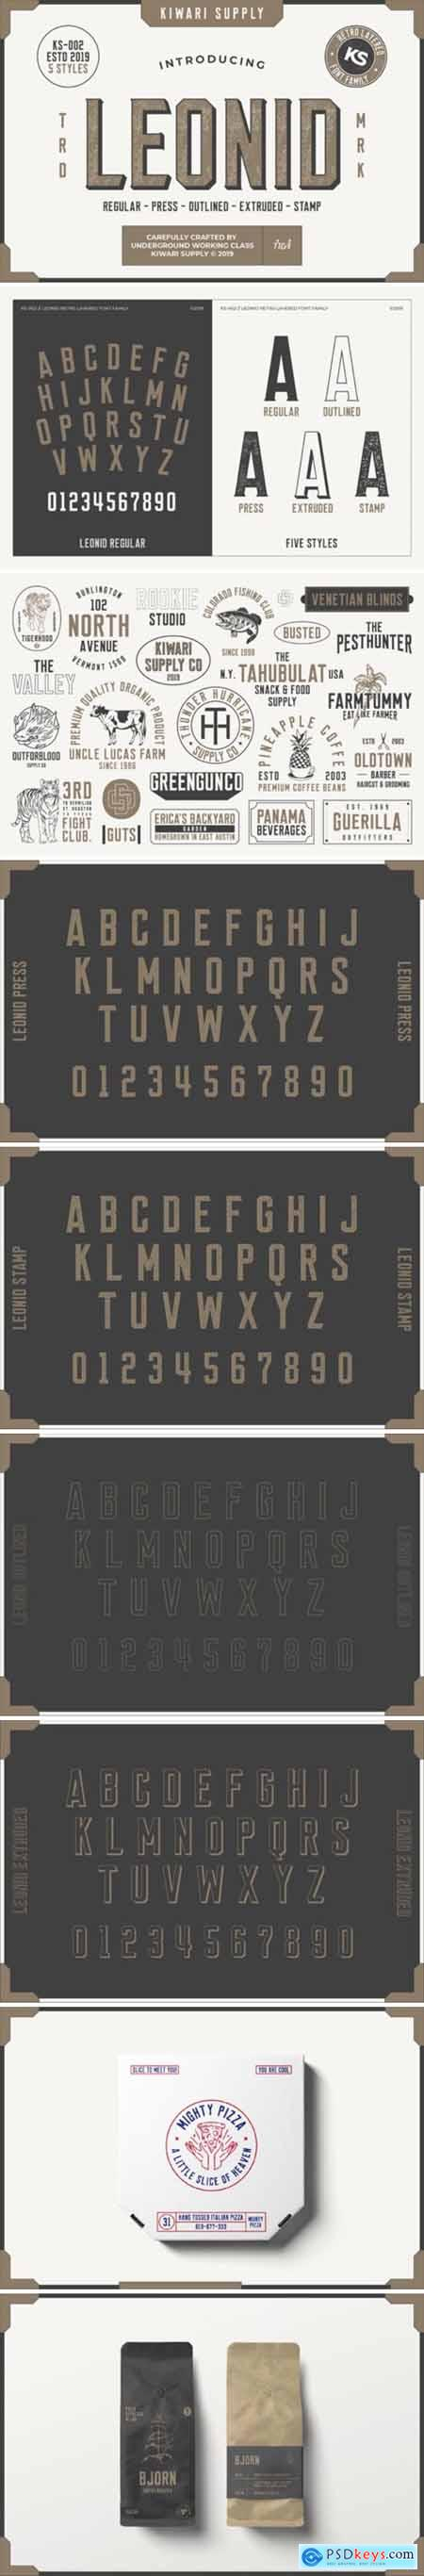 Leonid Retro Layered Font Pack 297167